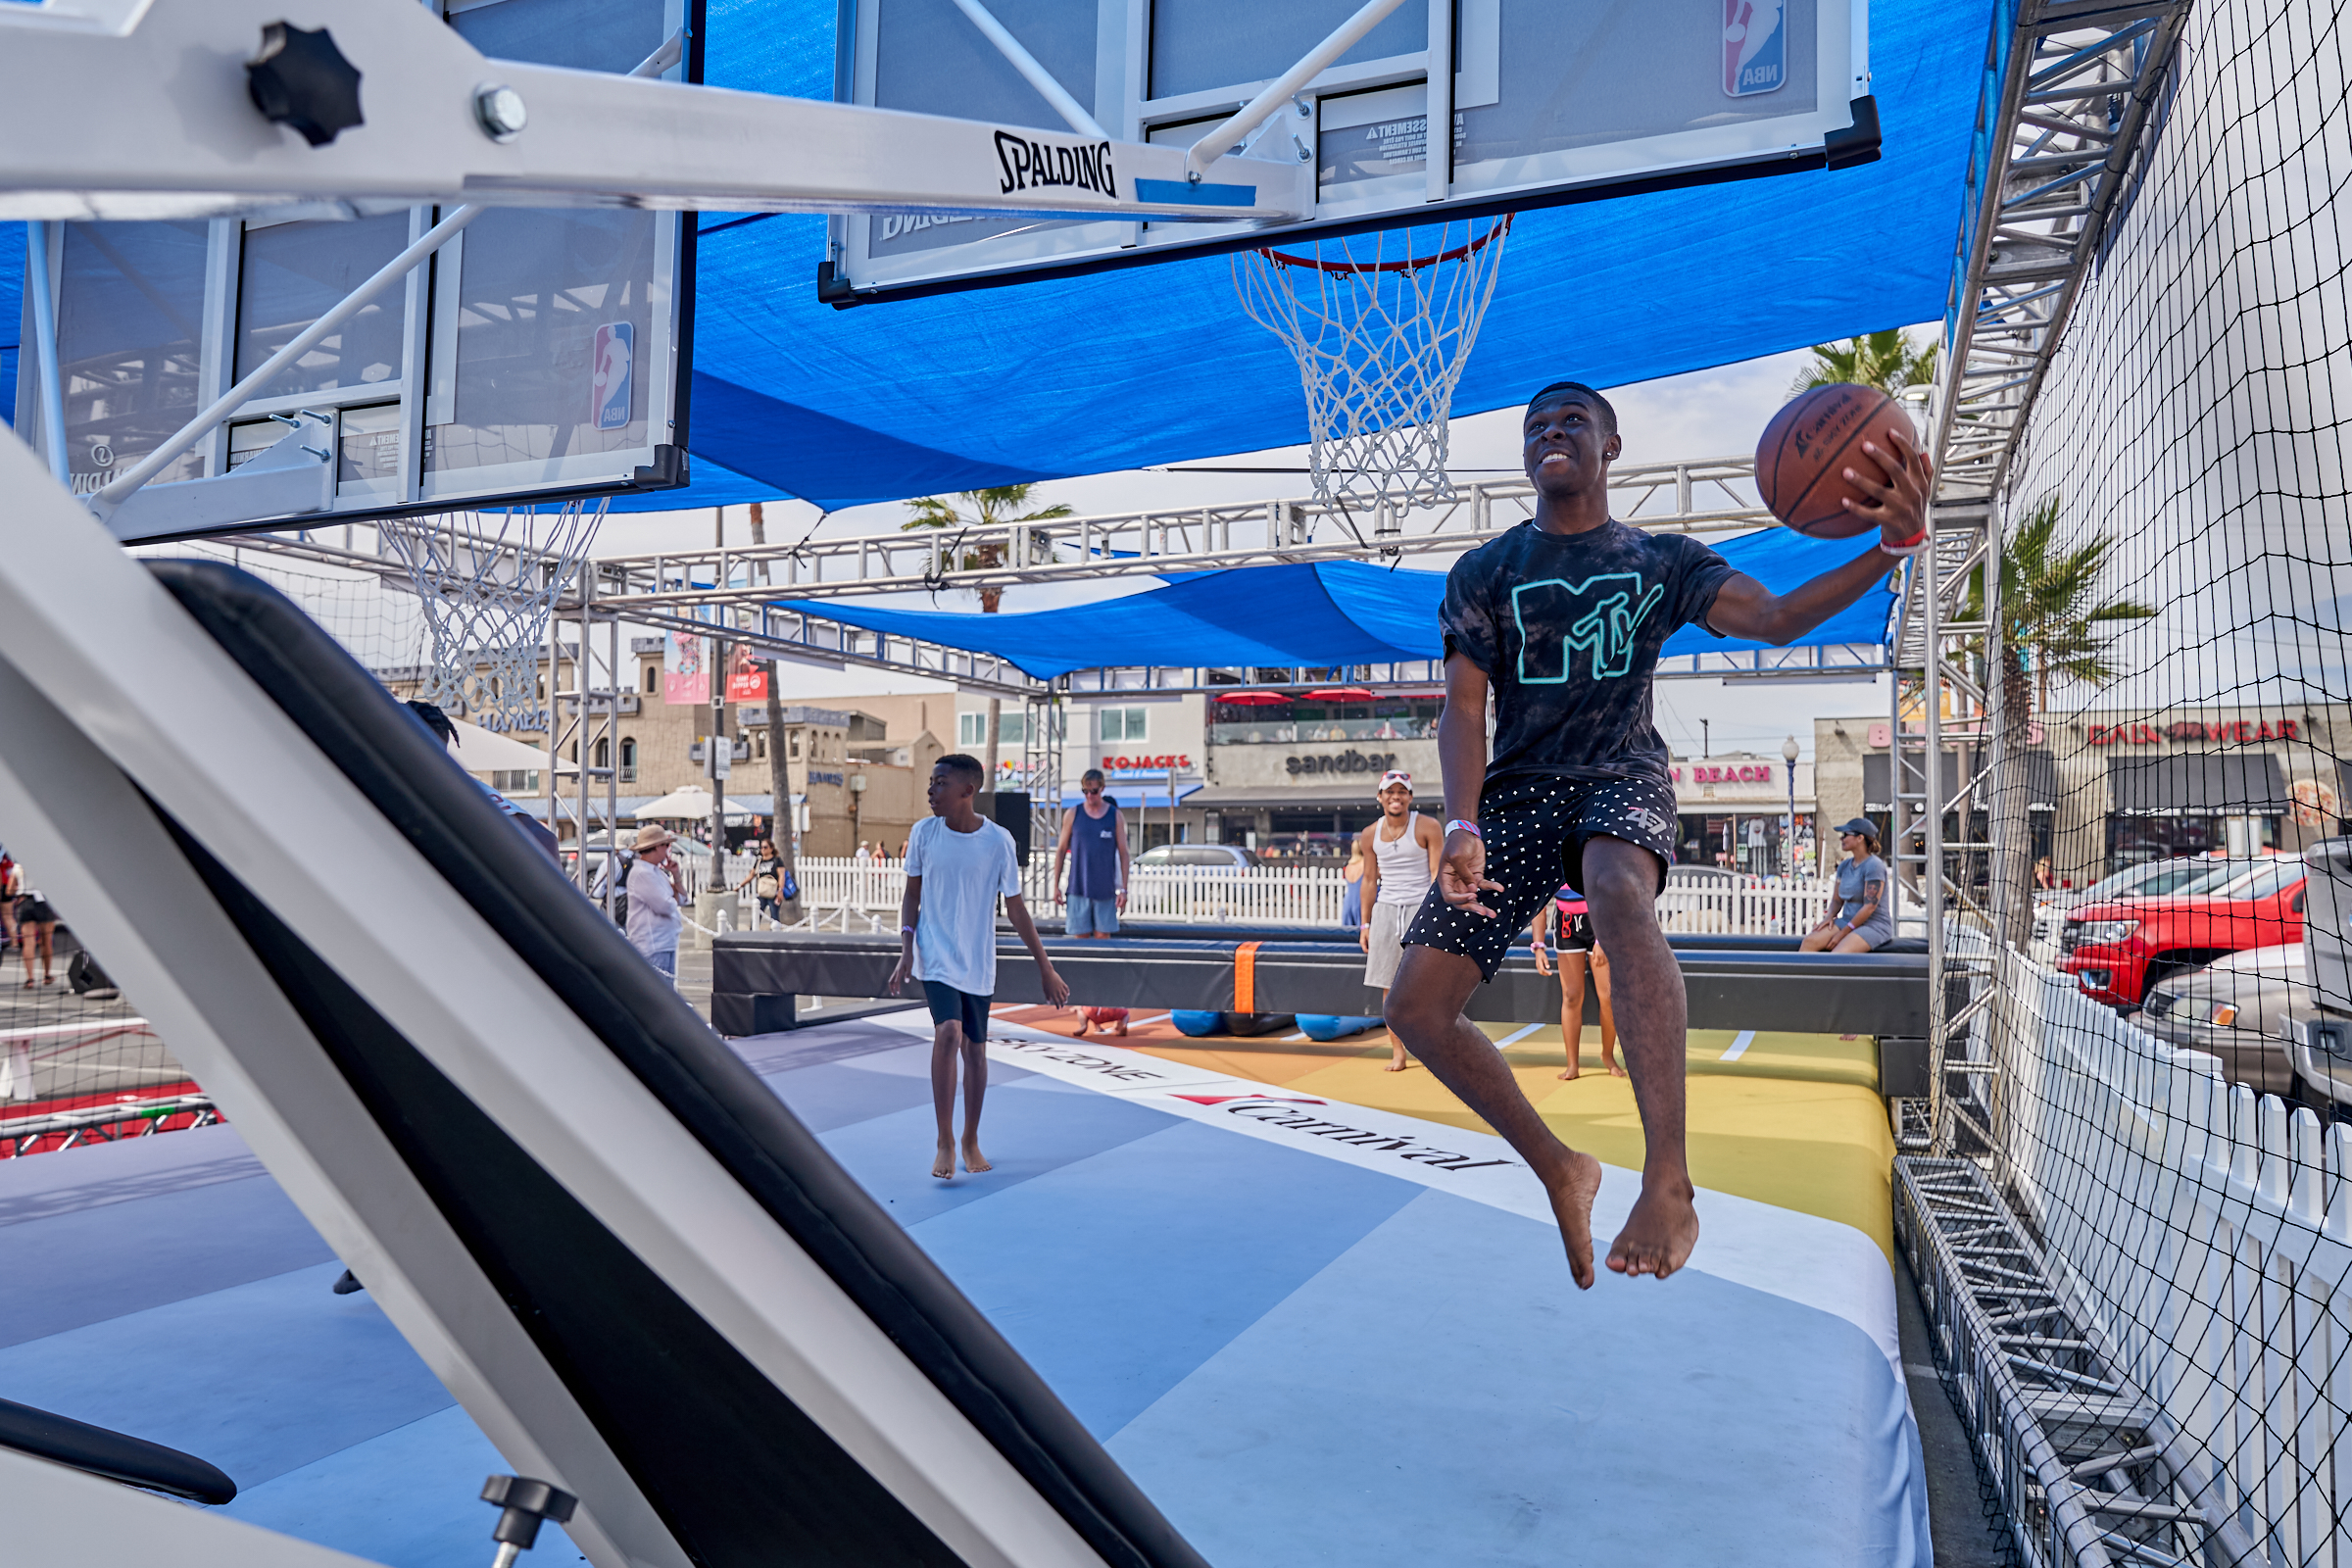 basketball activation by event planners